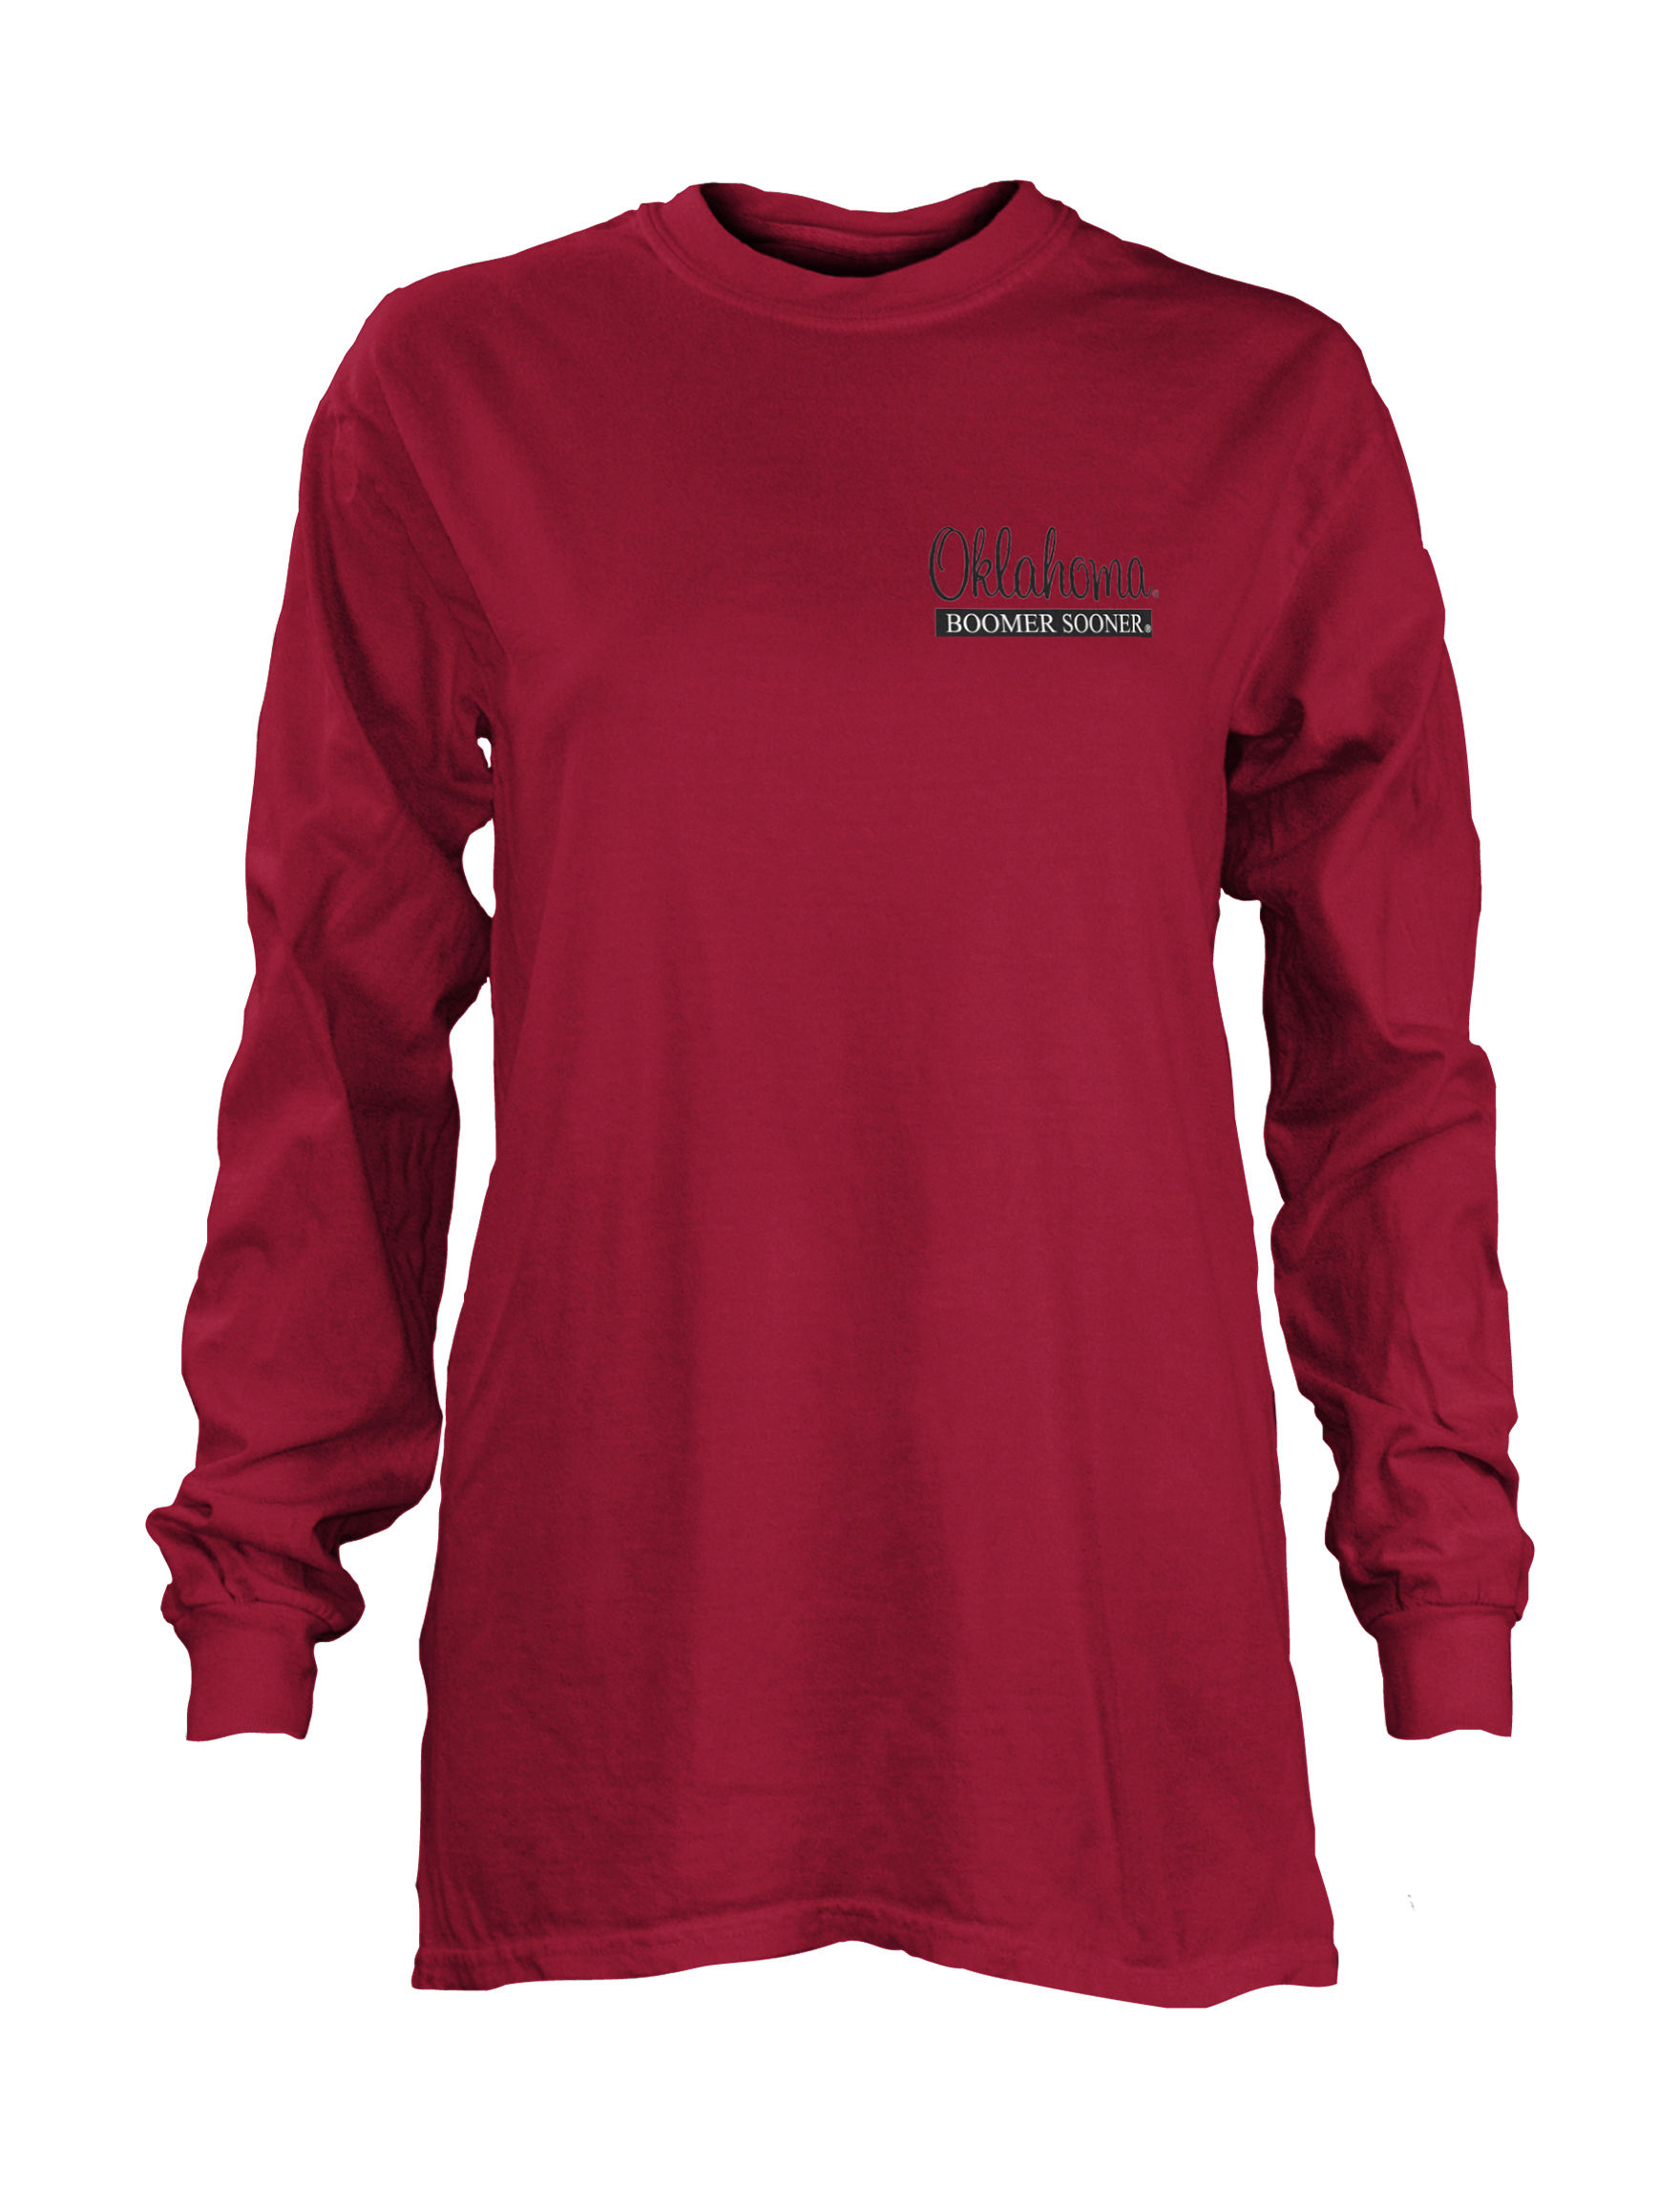 NCAA Red Pull-overs Shirts & Blouses